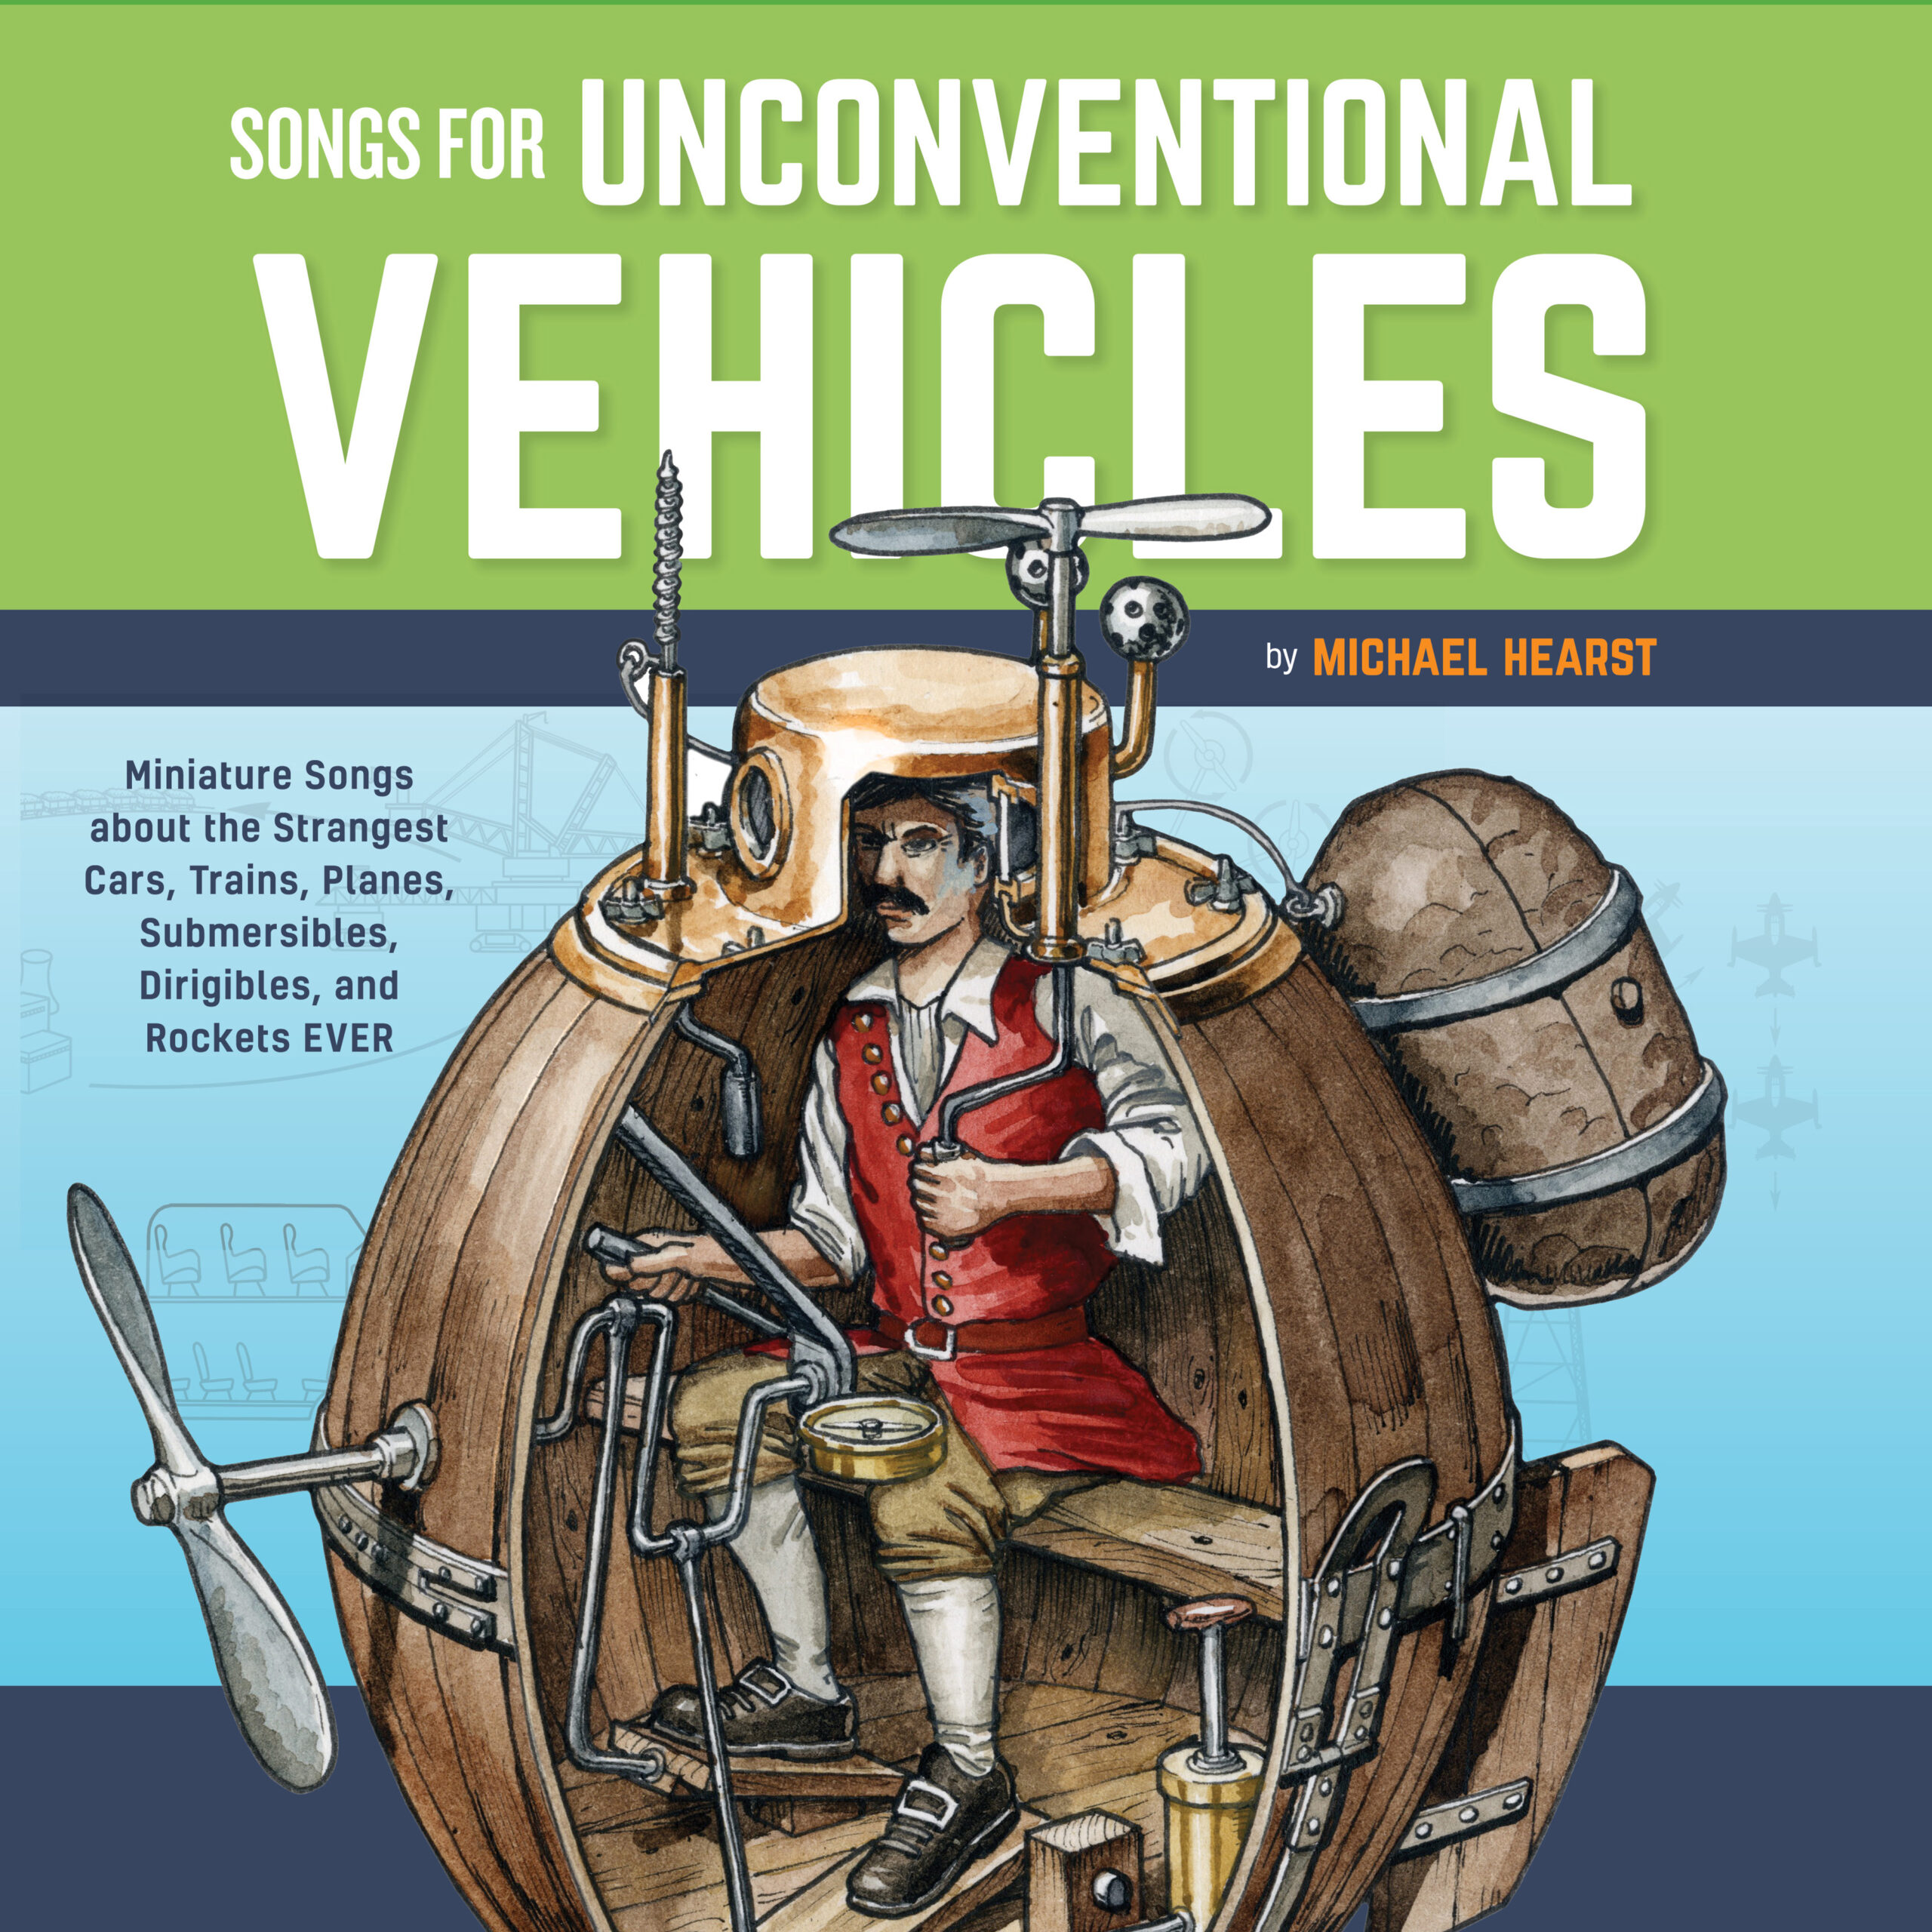 Brooklyn's Michael Hearst Releases New Album & Book, Songs for Unconventional Vehicles